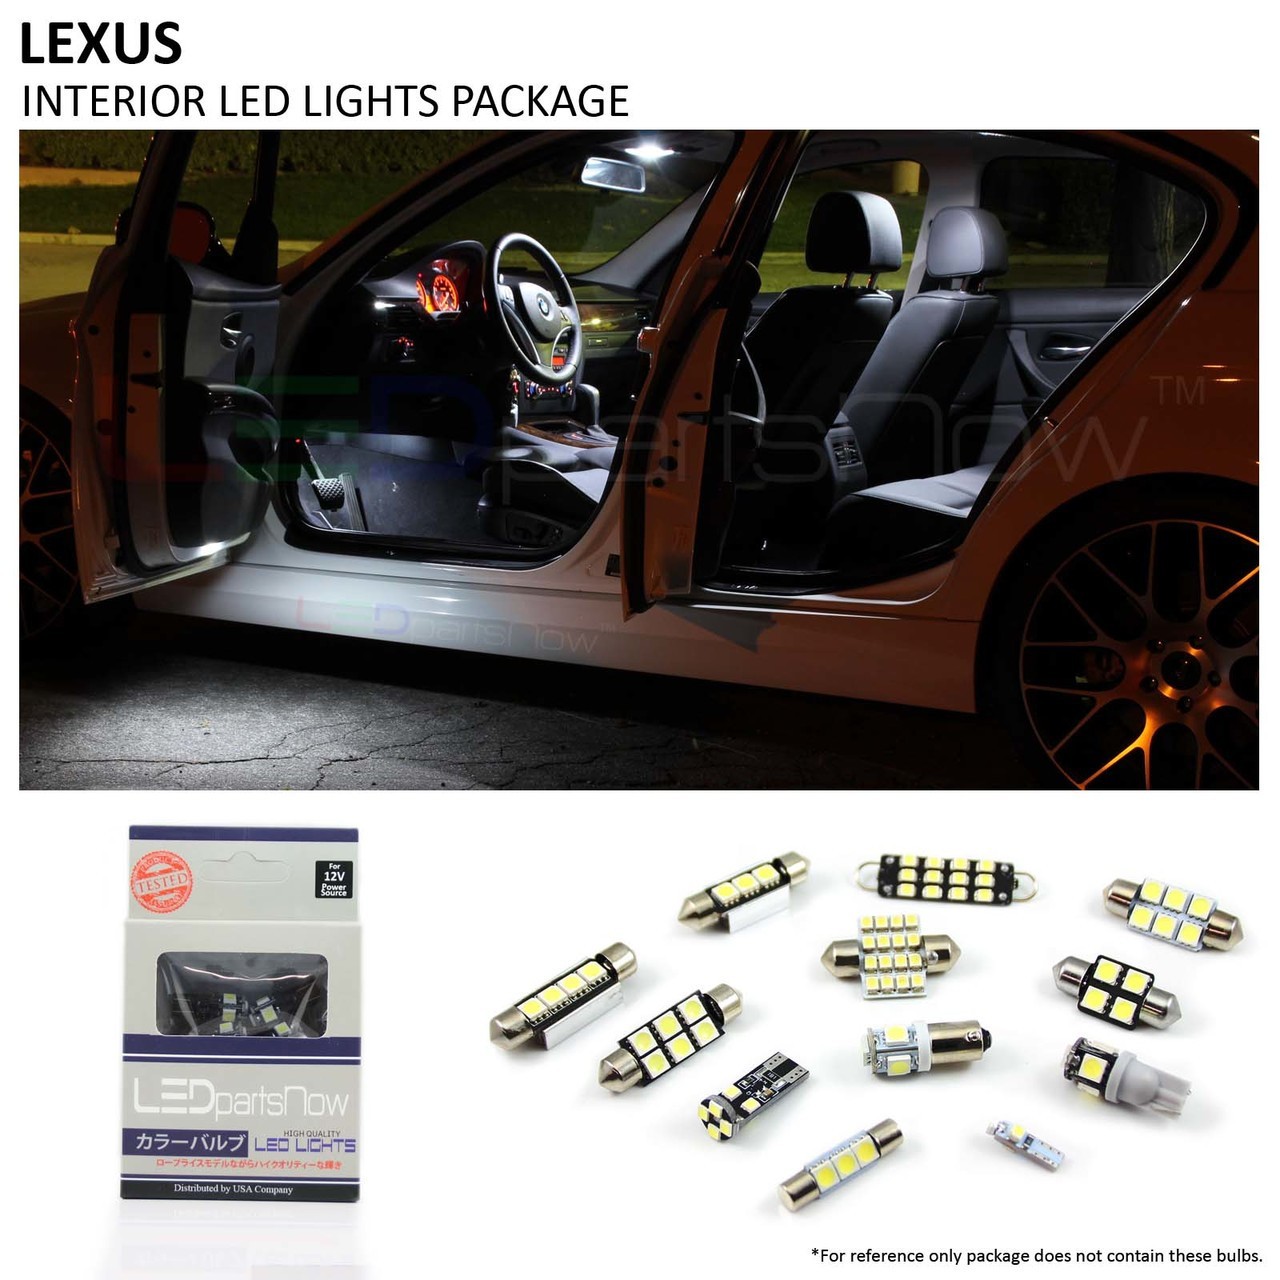 2010 2015 Lexus Rx Interior Led Lights Package Ct200h Wiring Diagram Image 1